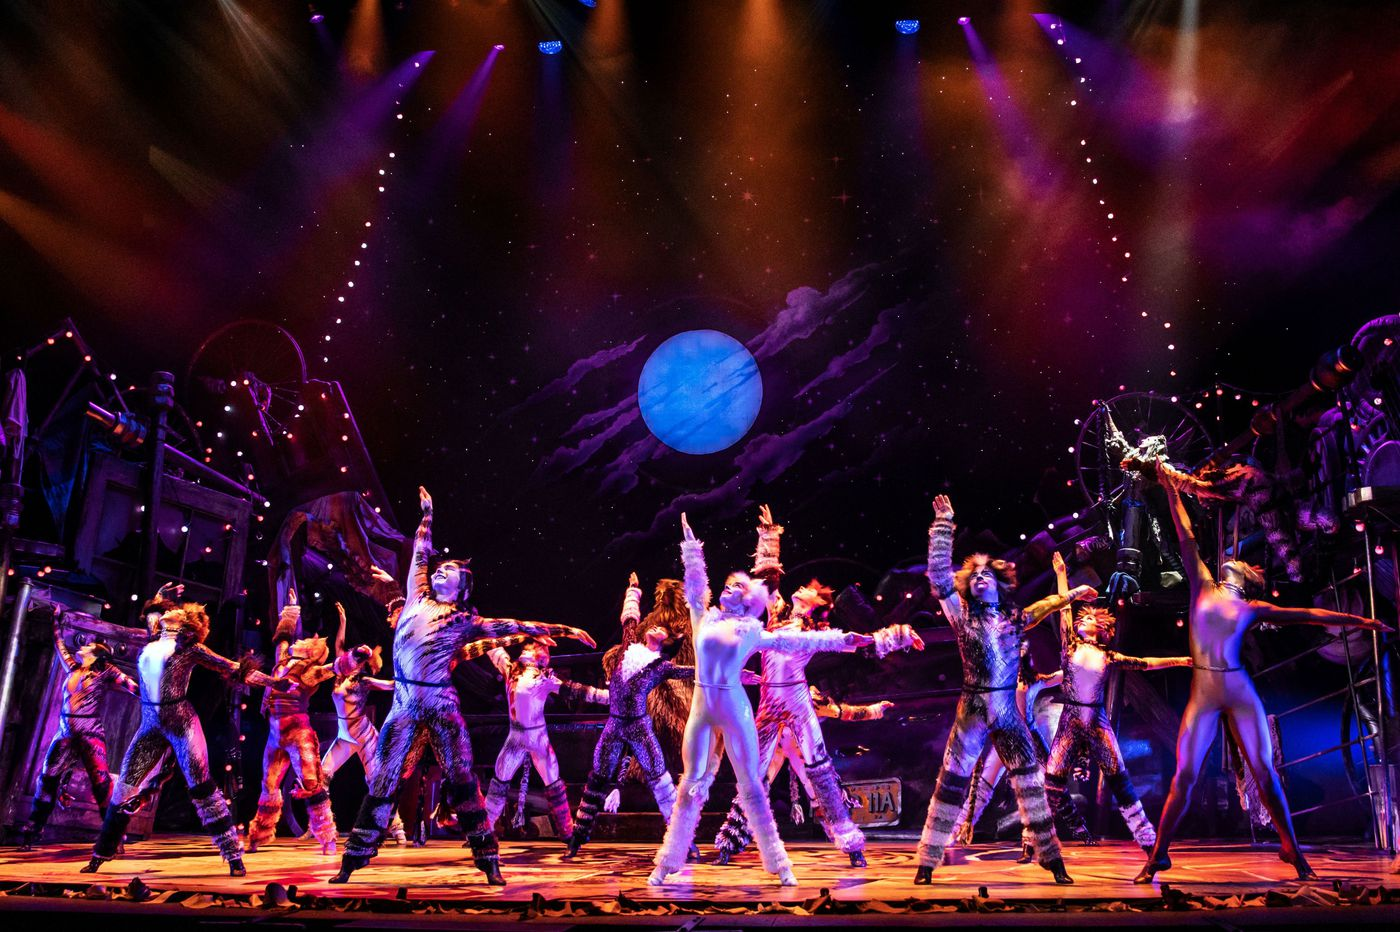 'Cats' at the Forrest: Dazzling, fun-loving parade of fabulous felines